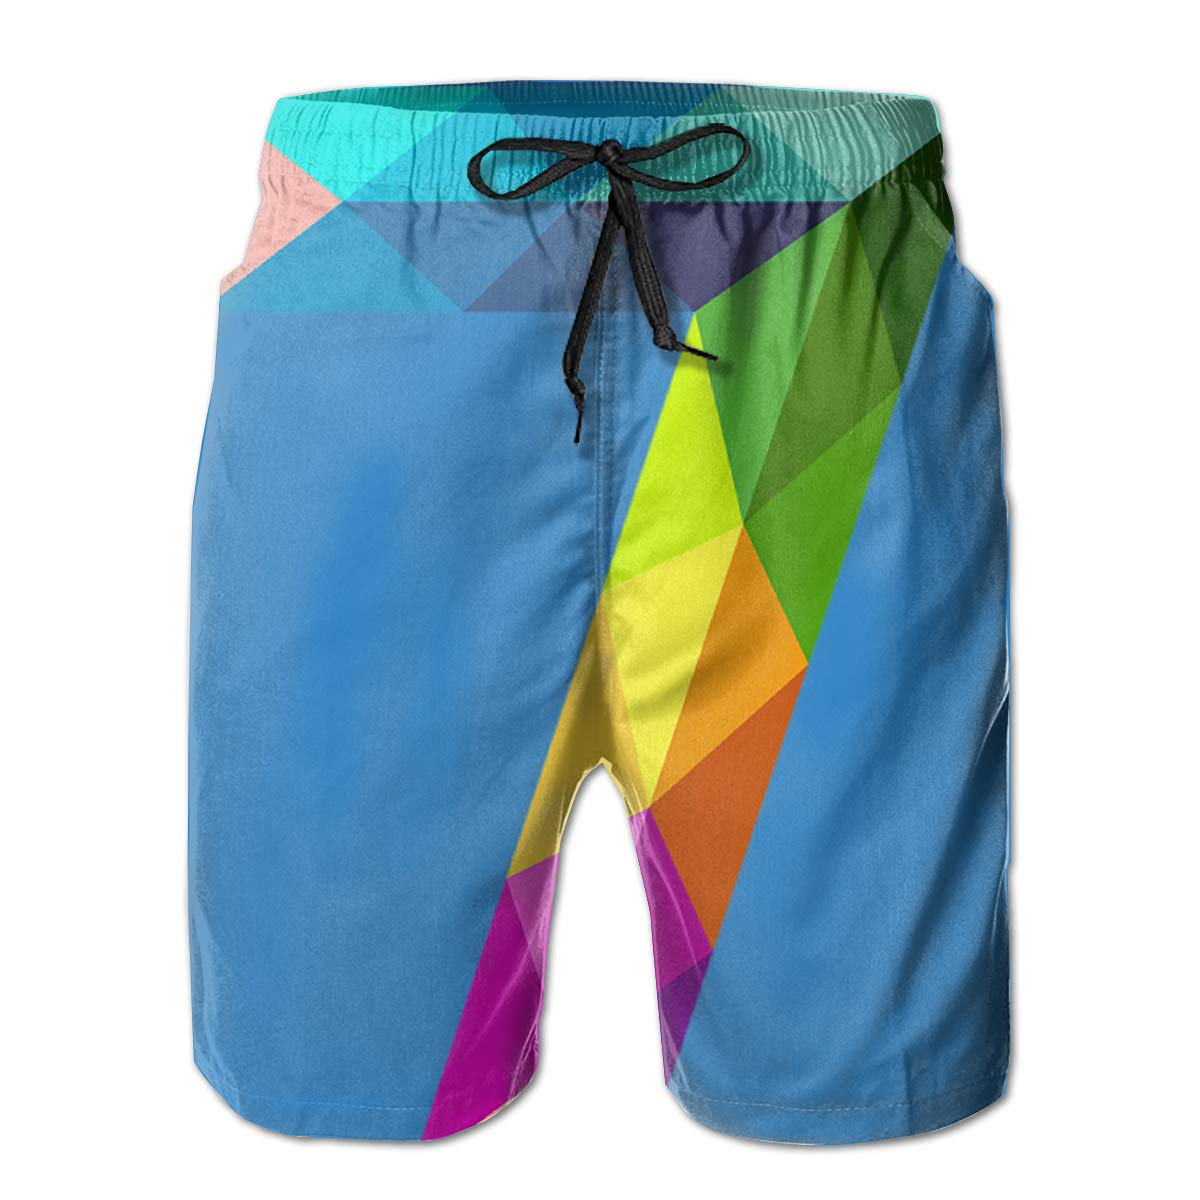 Number Seven Mens Swimming Pants Swimming and Other Marine Sports Suitable for Surfing Redeast Beach Shorts